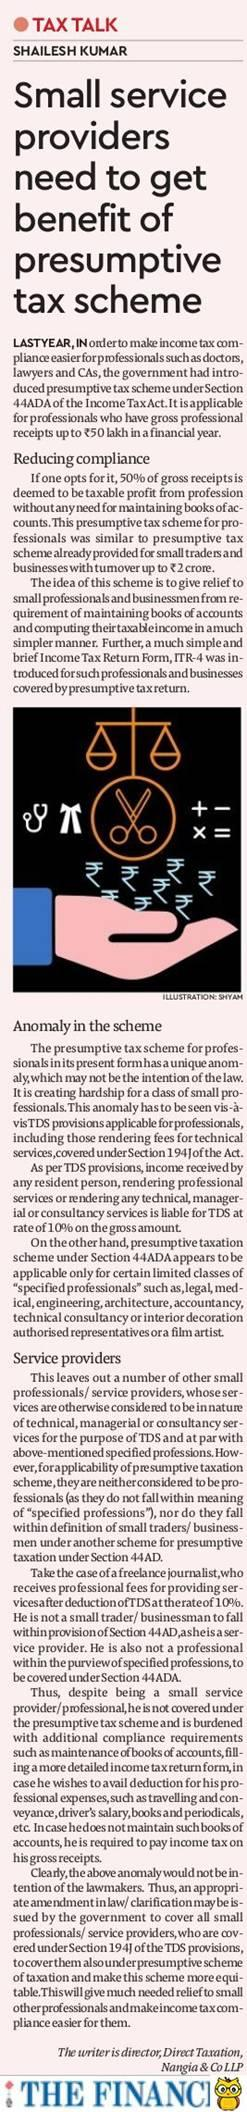 Small service providers need to get benefit of presumptive scheme: Shailesh Kumar